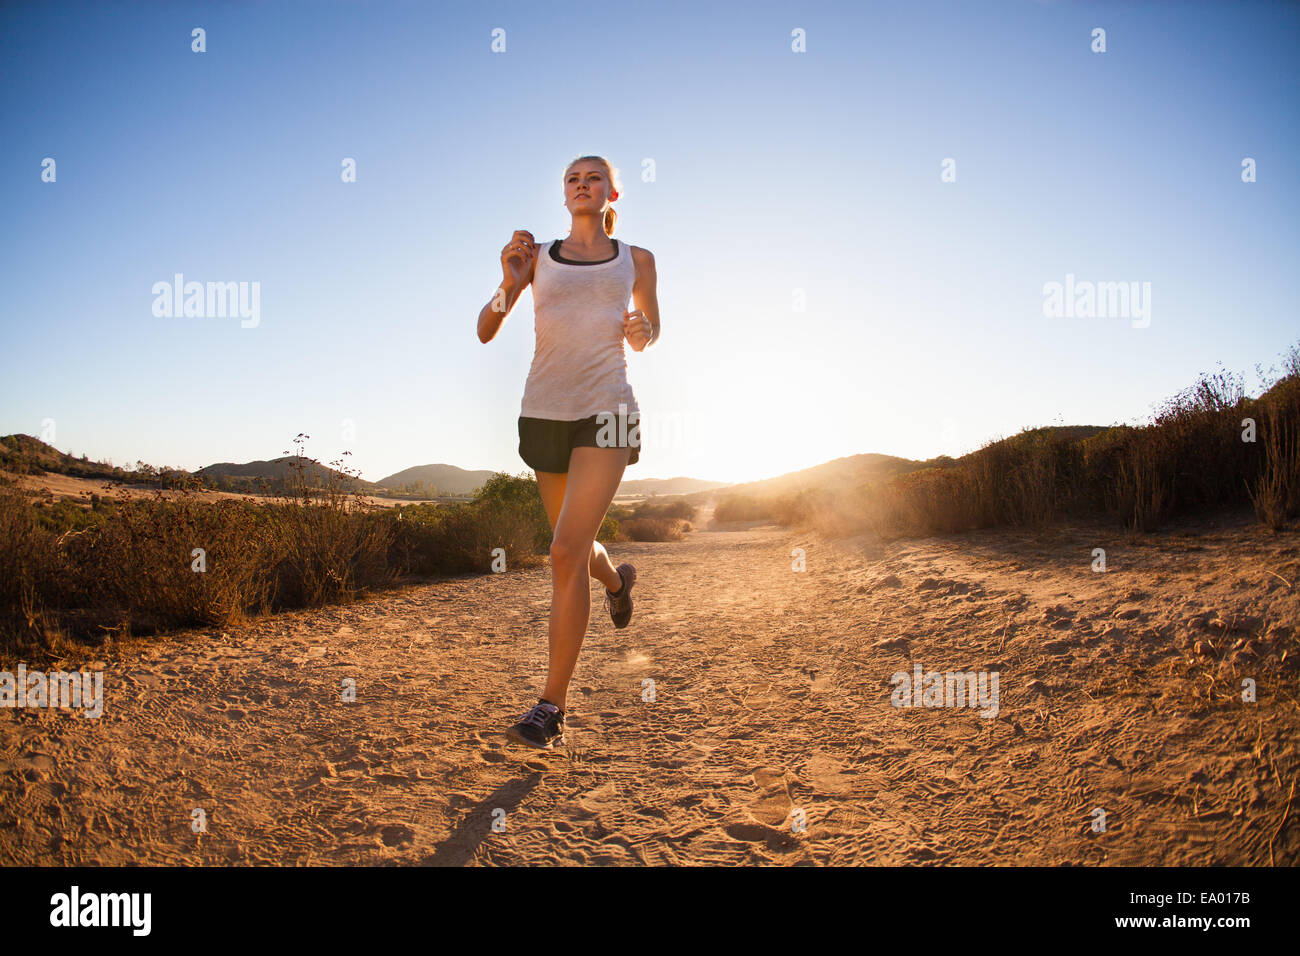 Young woman jogging on sunlit path, Poway, CA, USA - Stock Image